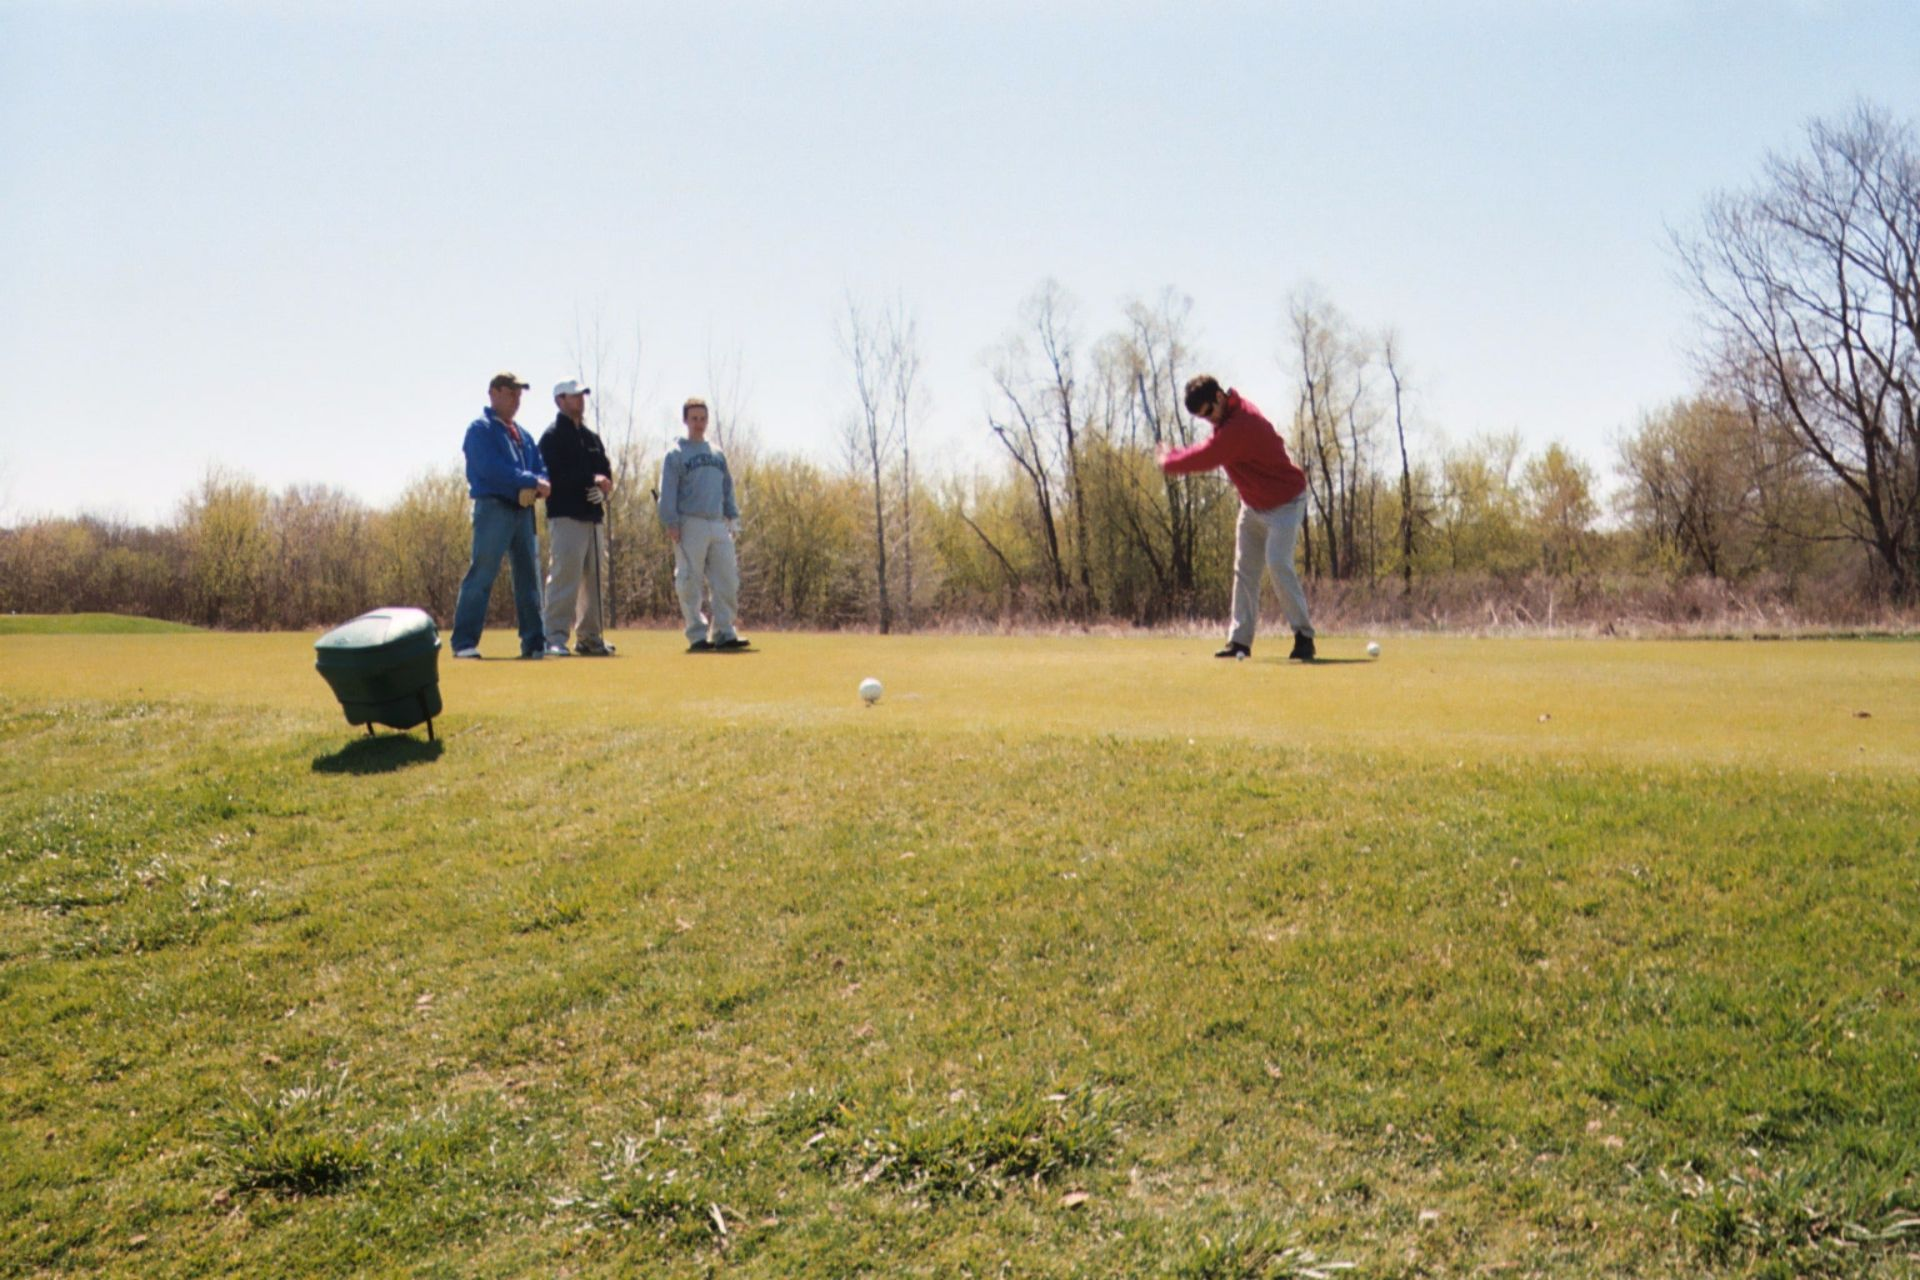 golf_outing_022_20A.jpg